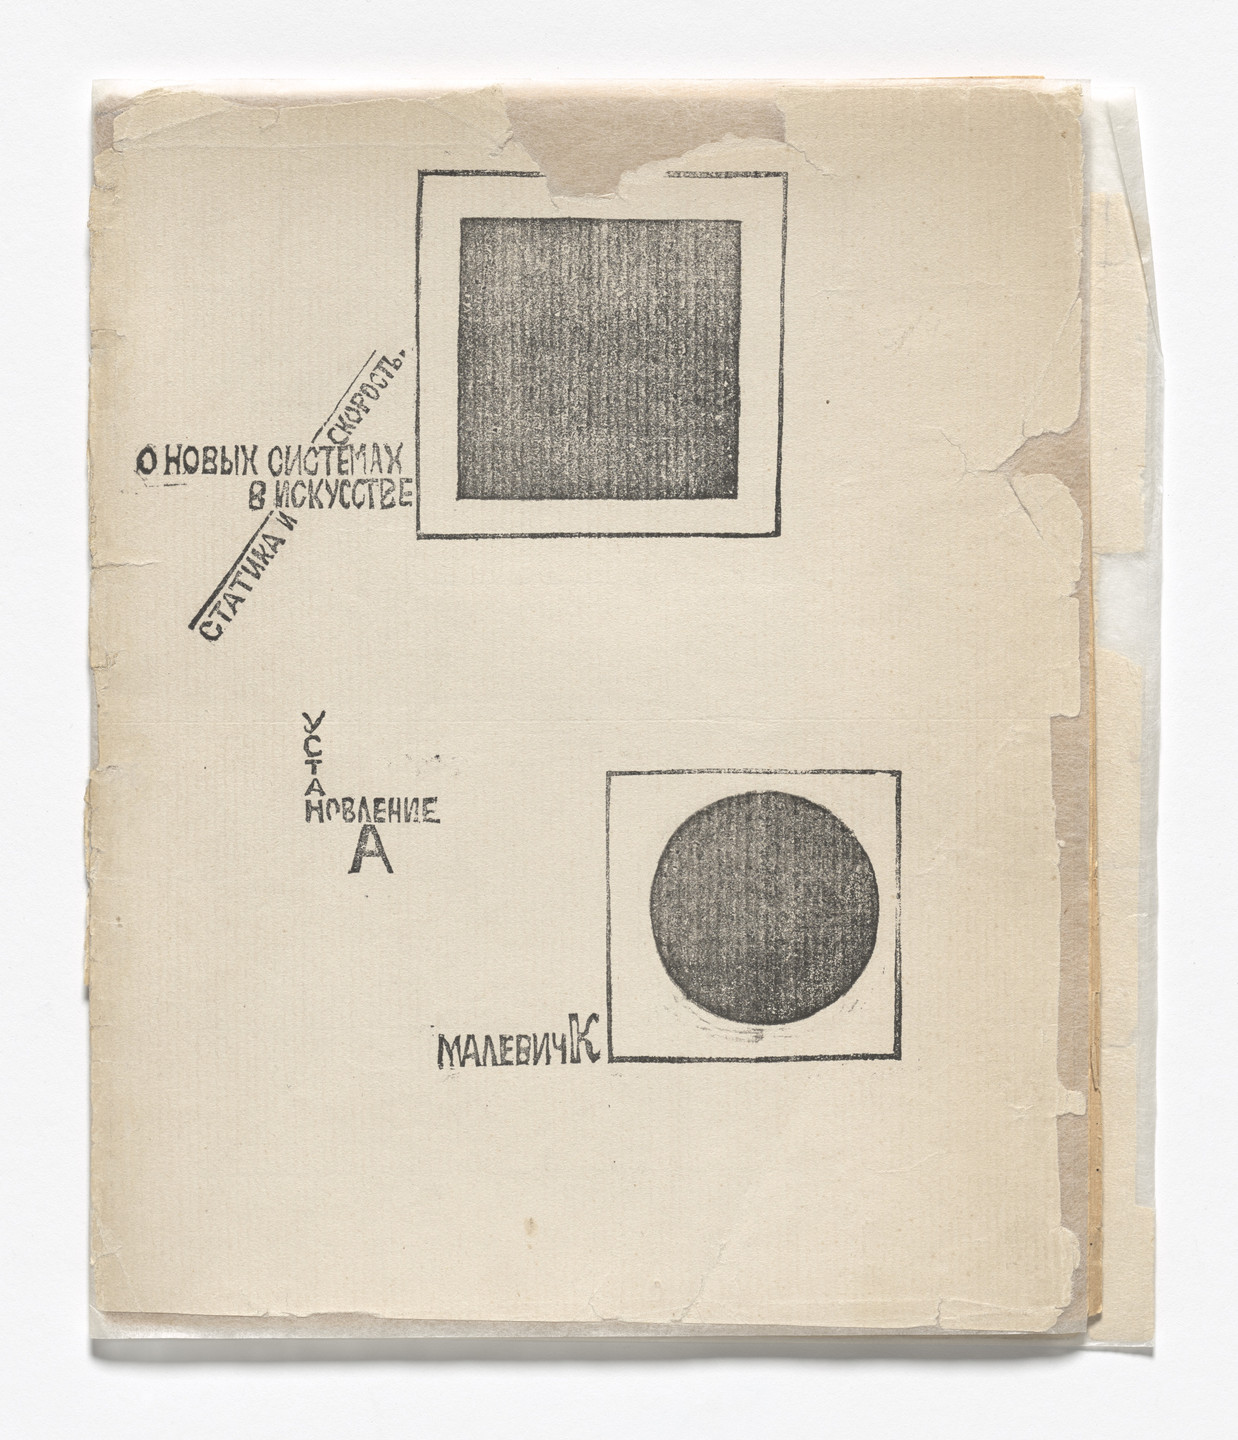 Kazimir Malevich. O Novykh Sistemakh V Iskusstve (On New Systems in Art). (Prints executed 1910-1919).